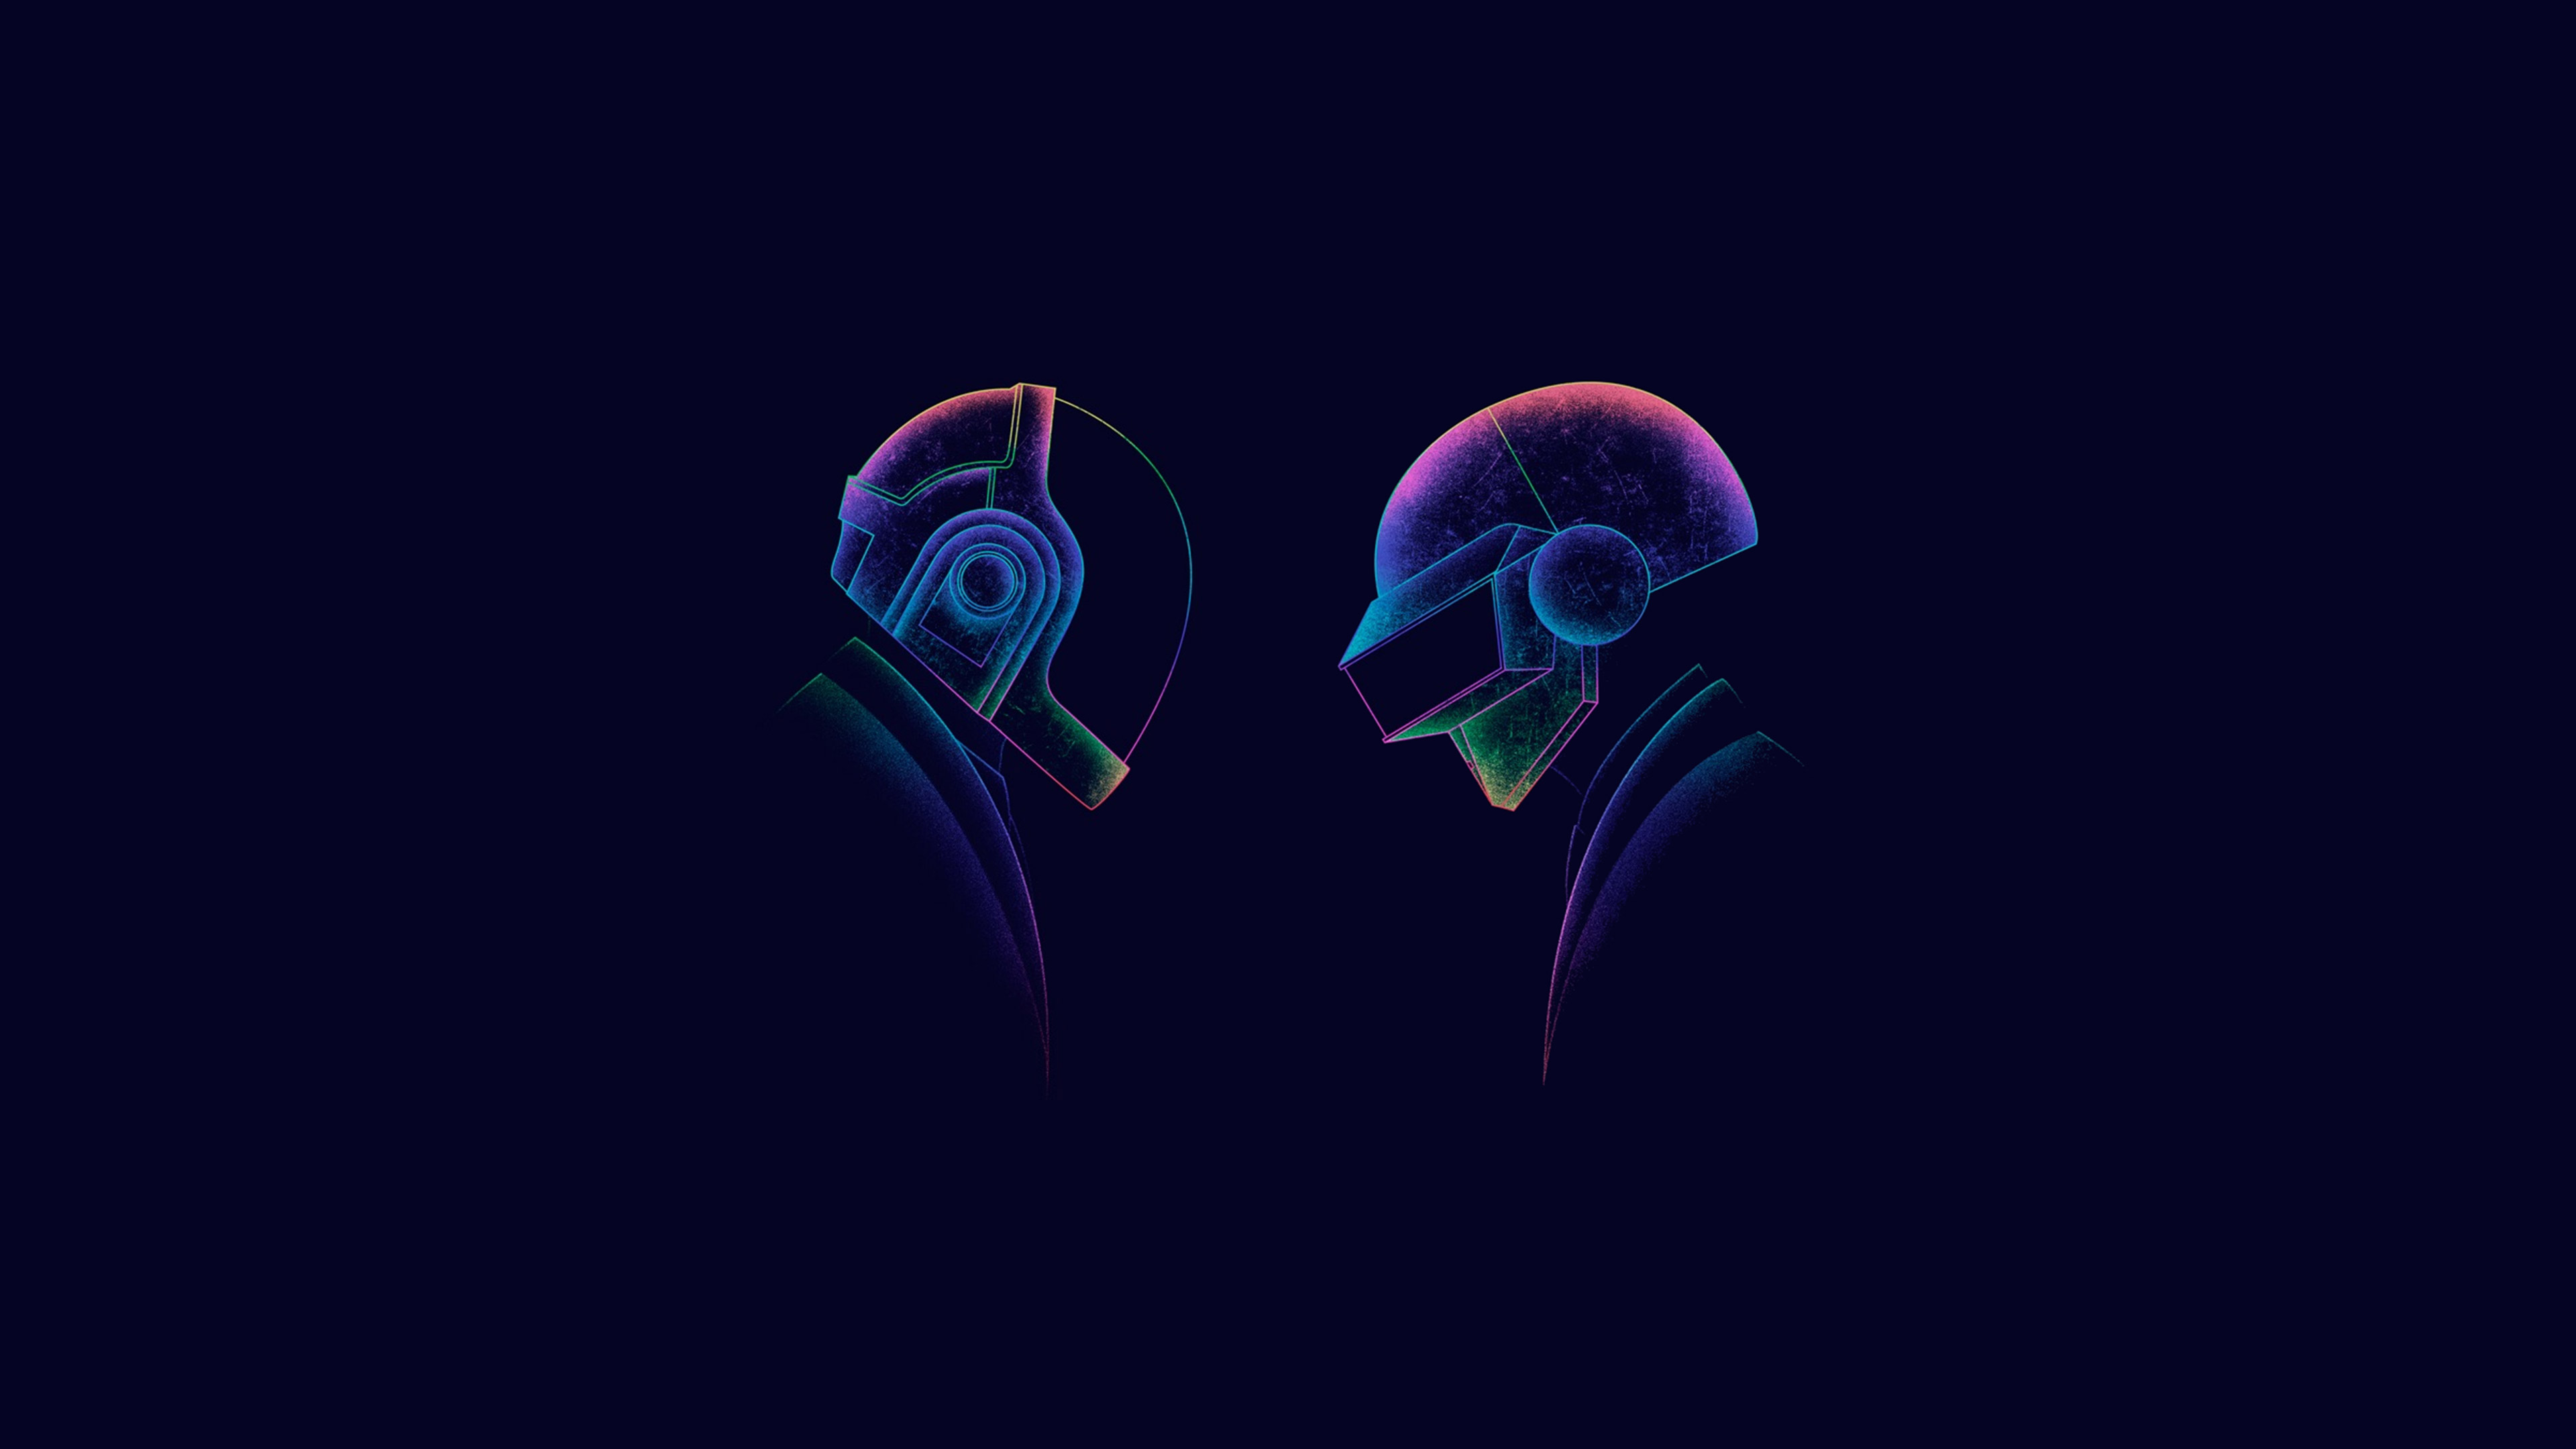 Anime Dj Wallpaper Daft Punk Minimalism 3 Hd Music 4k Wallpapers Images